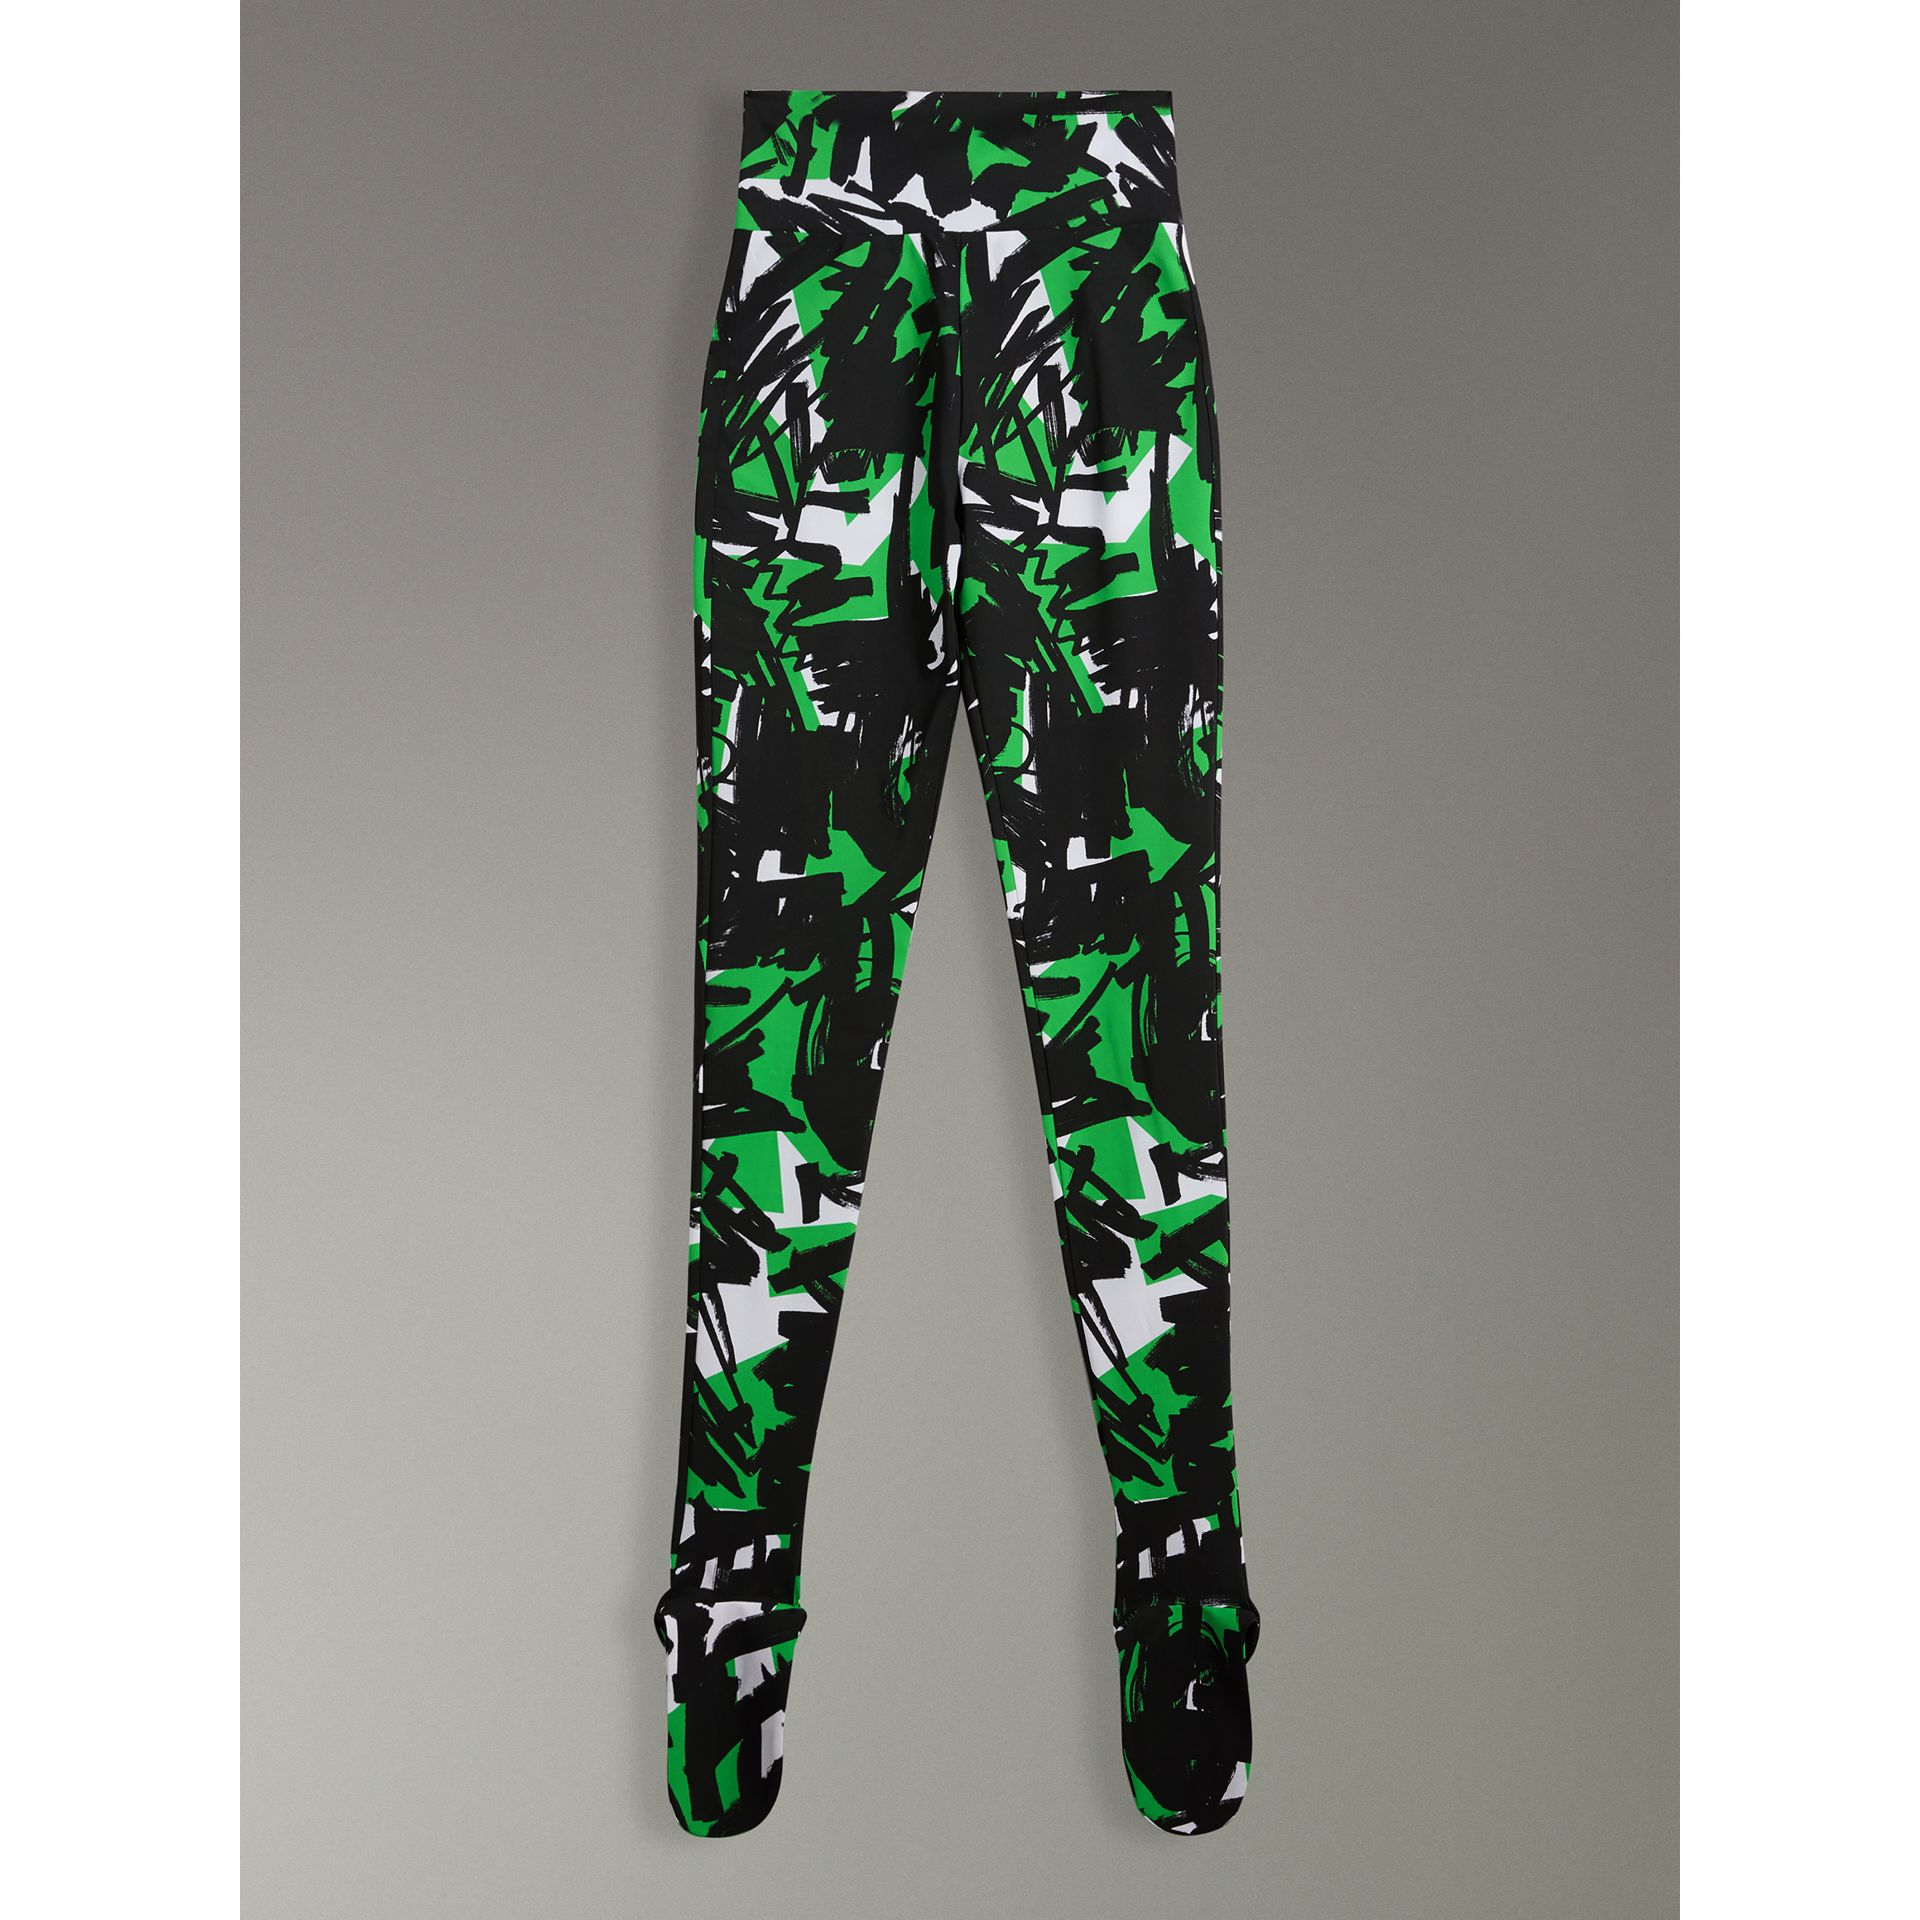 Graffiti Print Leggings in Neon Green - Women | Burberry United Kingdom - gallery image 3